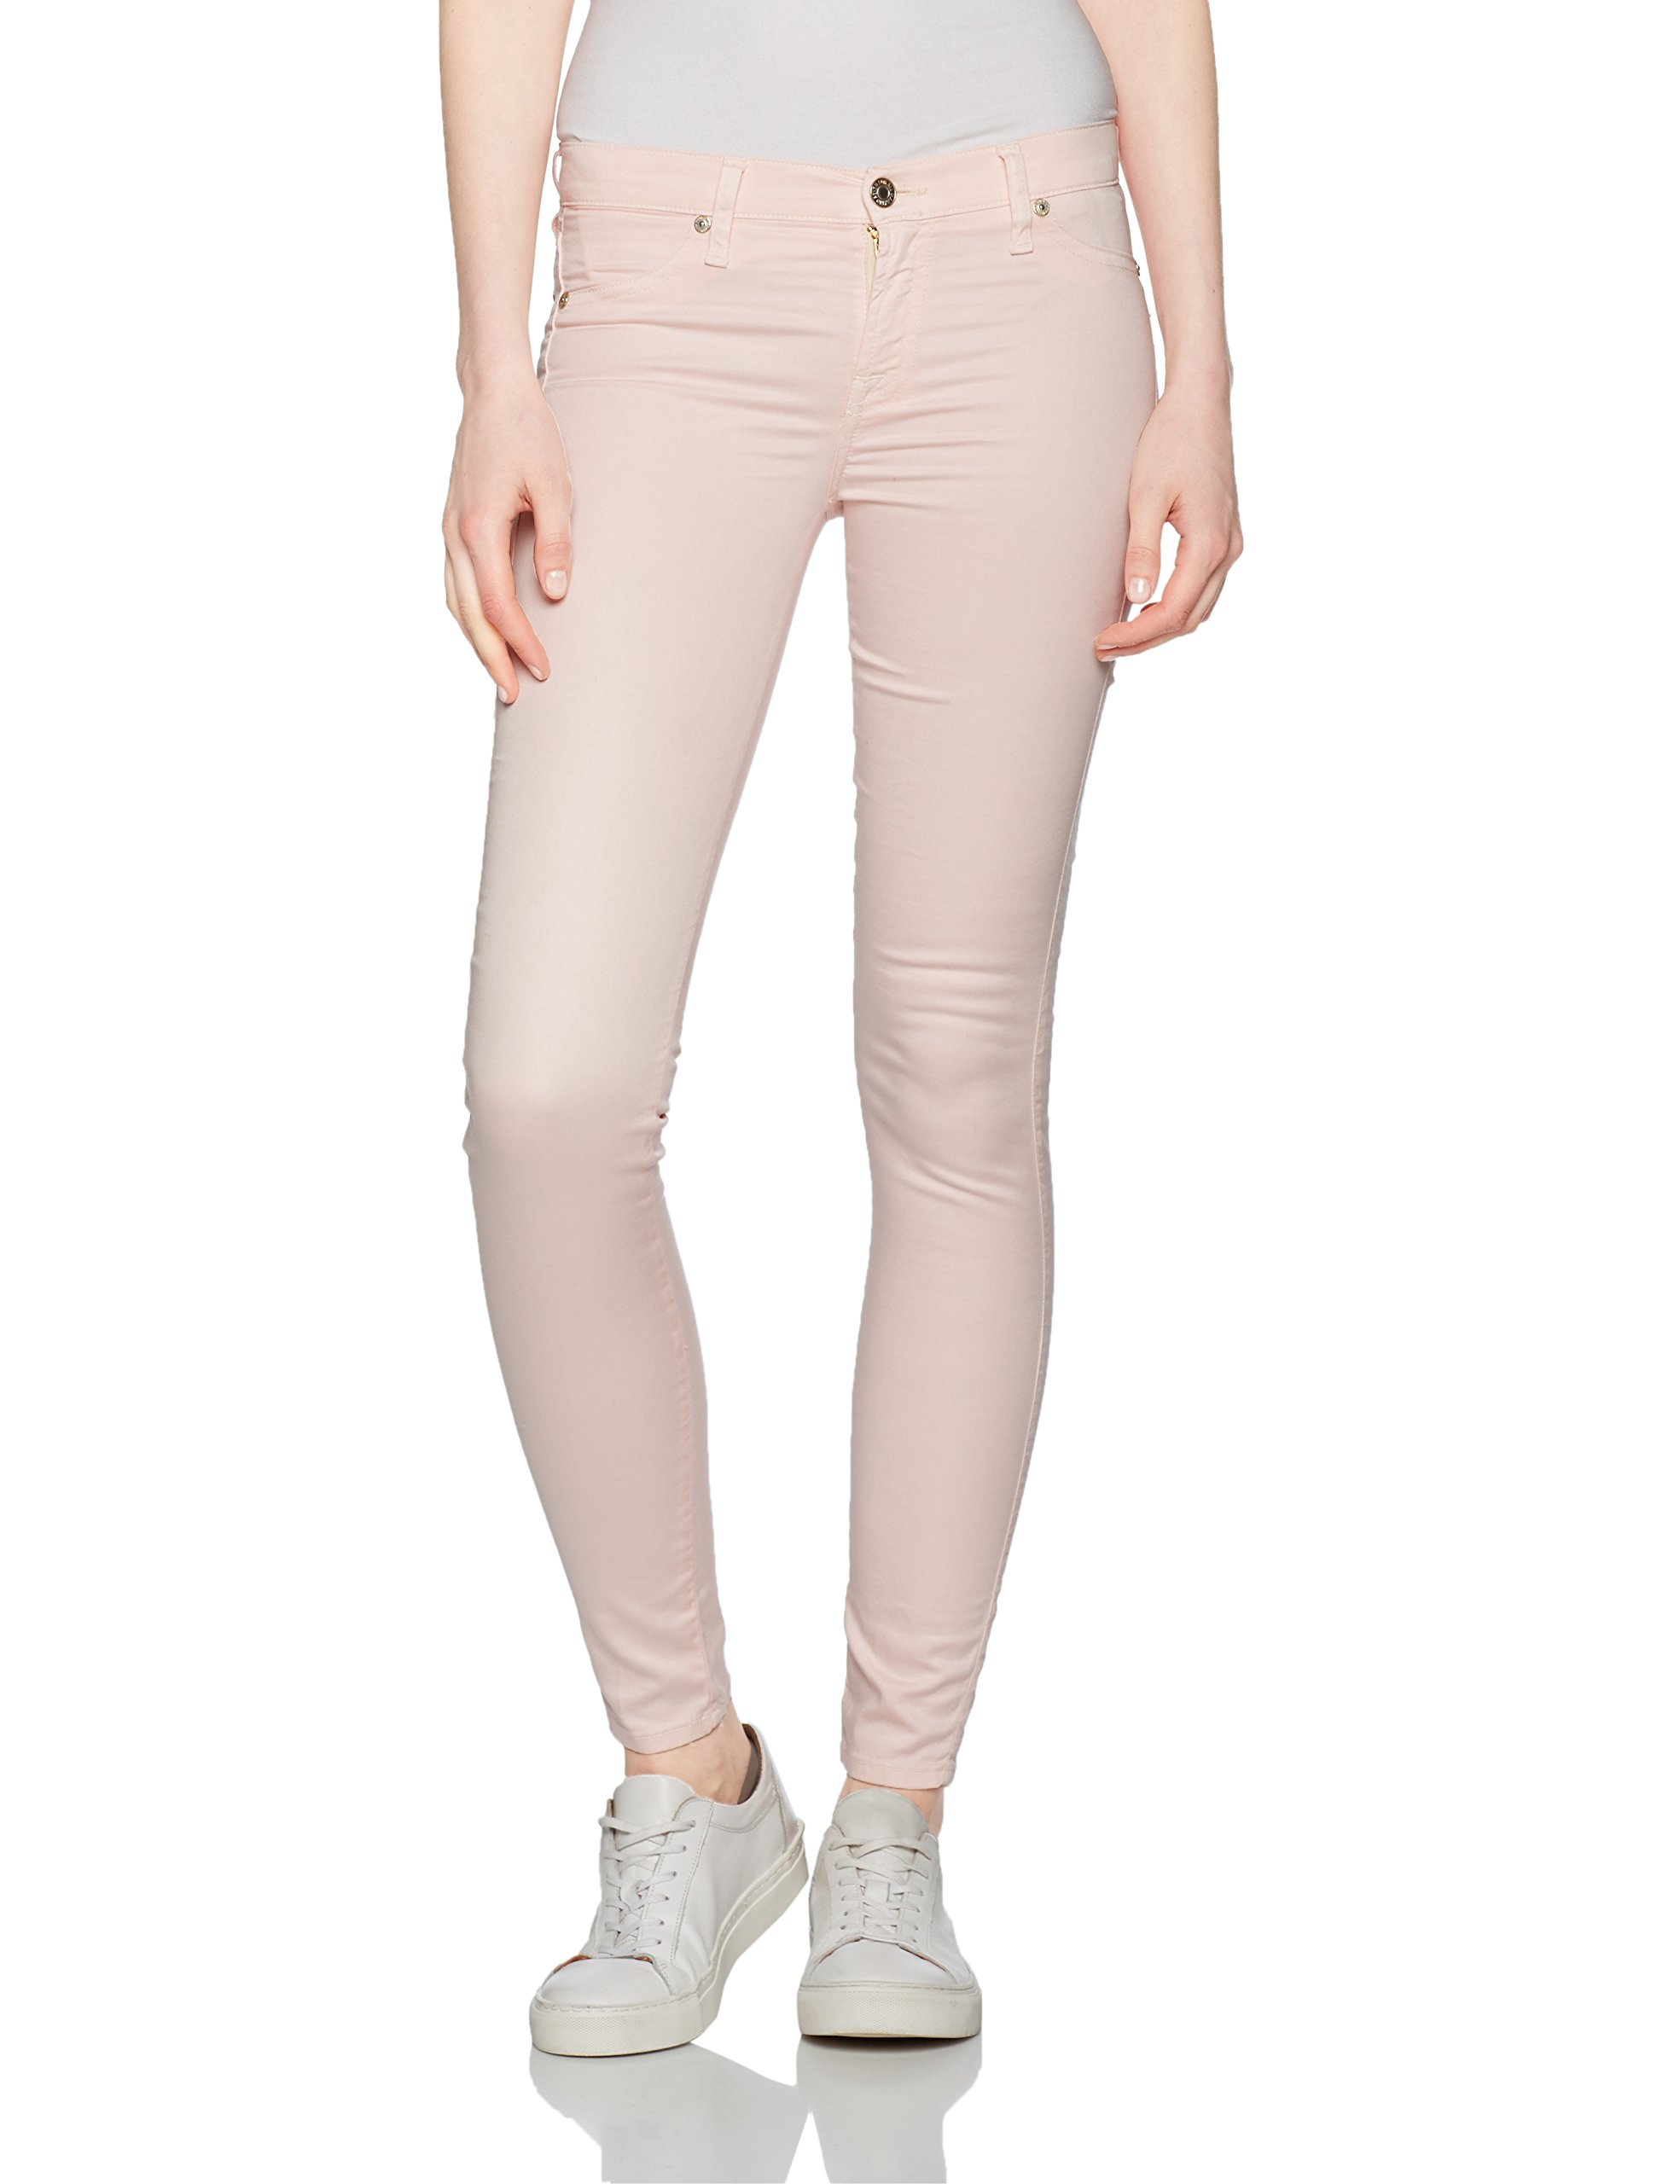 Fabricant30Femme Mankind The Pink 0abW30 Skinny 7 All For l30taille JeansRosepastel 6b7fyg